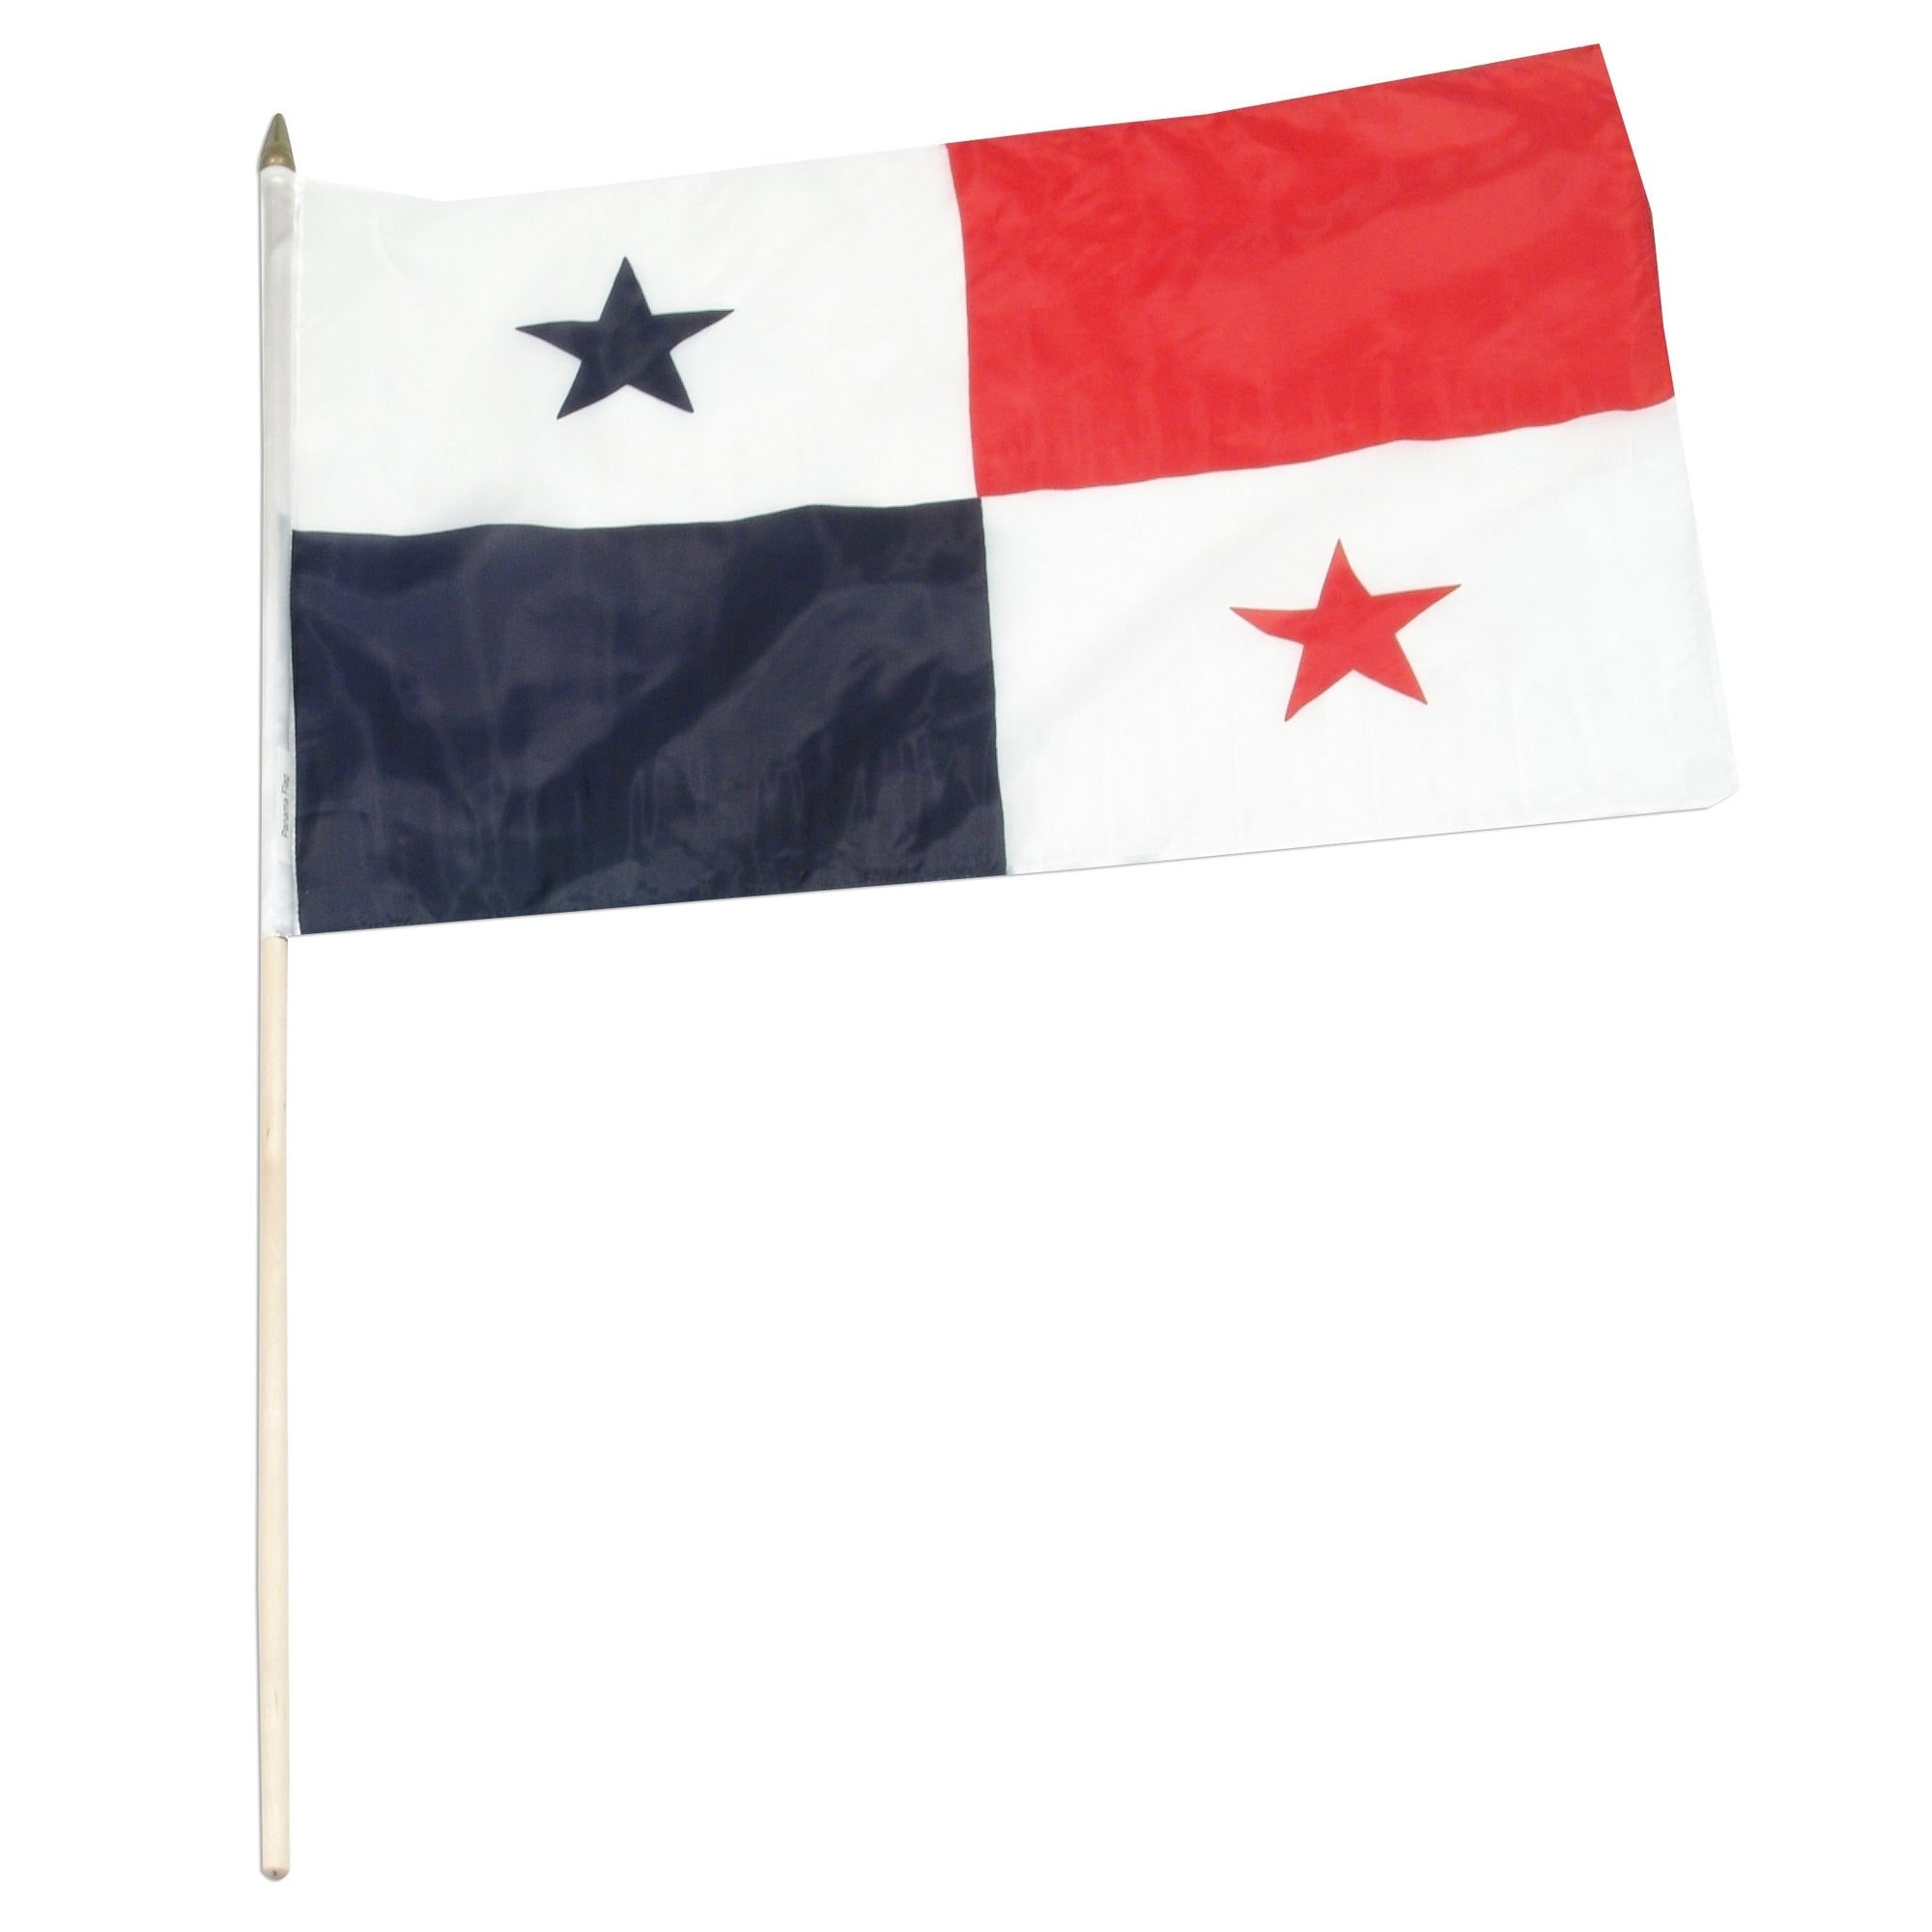 Panama flags for sale